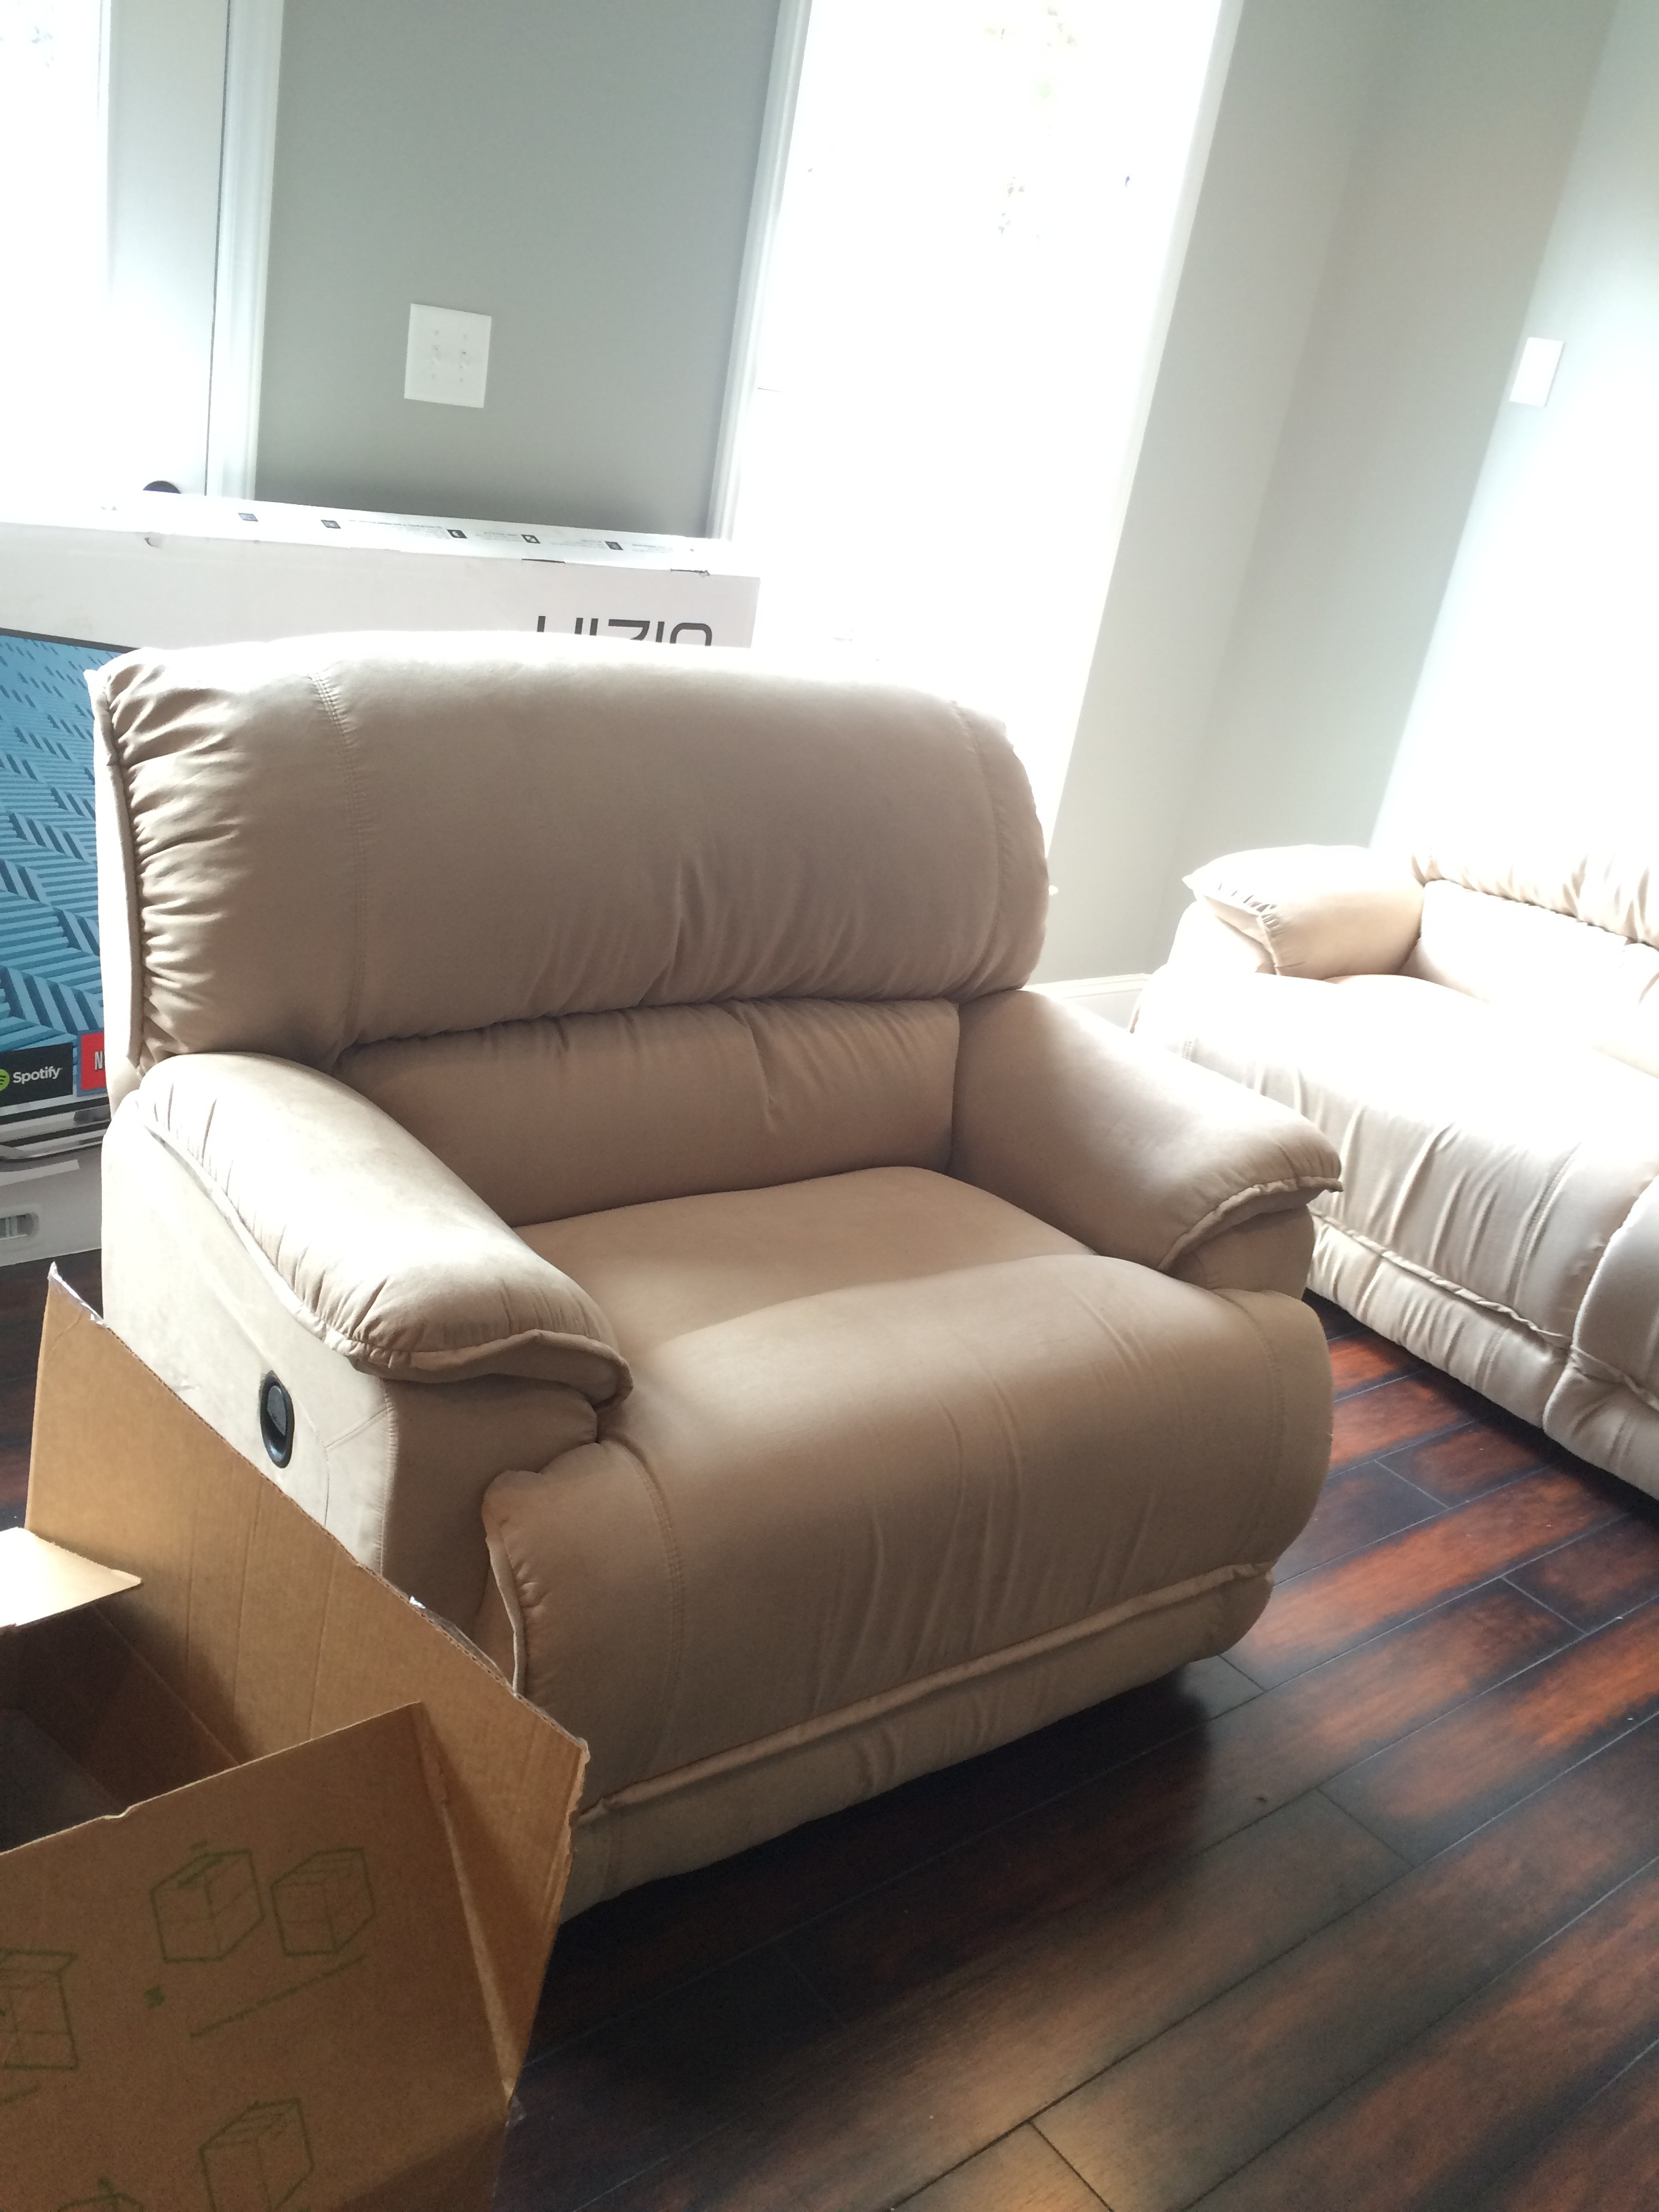 New La-Z-Boy chair-and-a-half (or love seat)